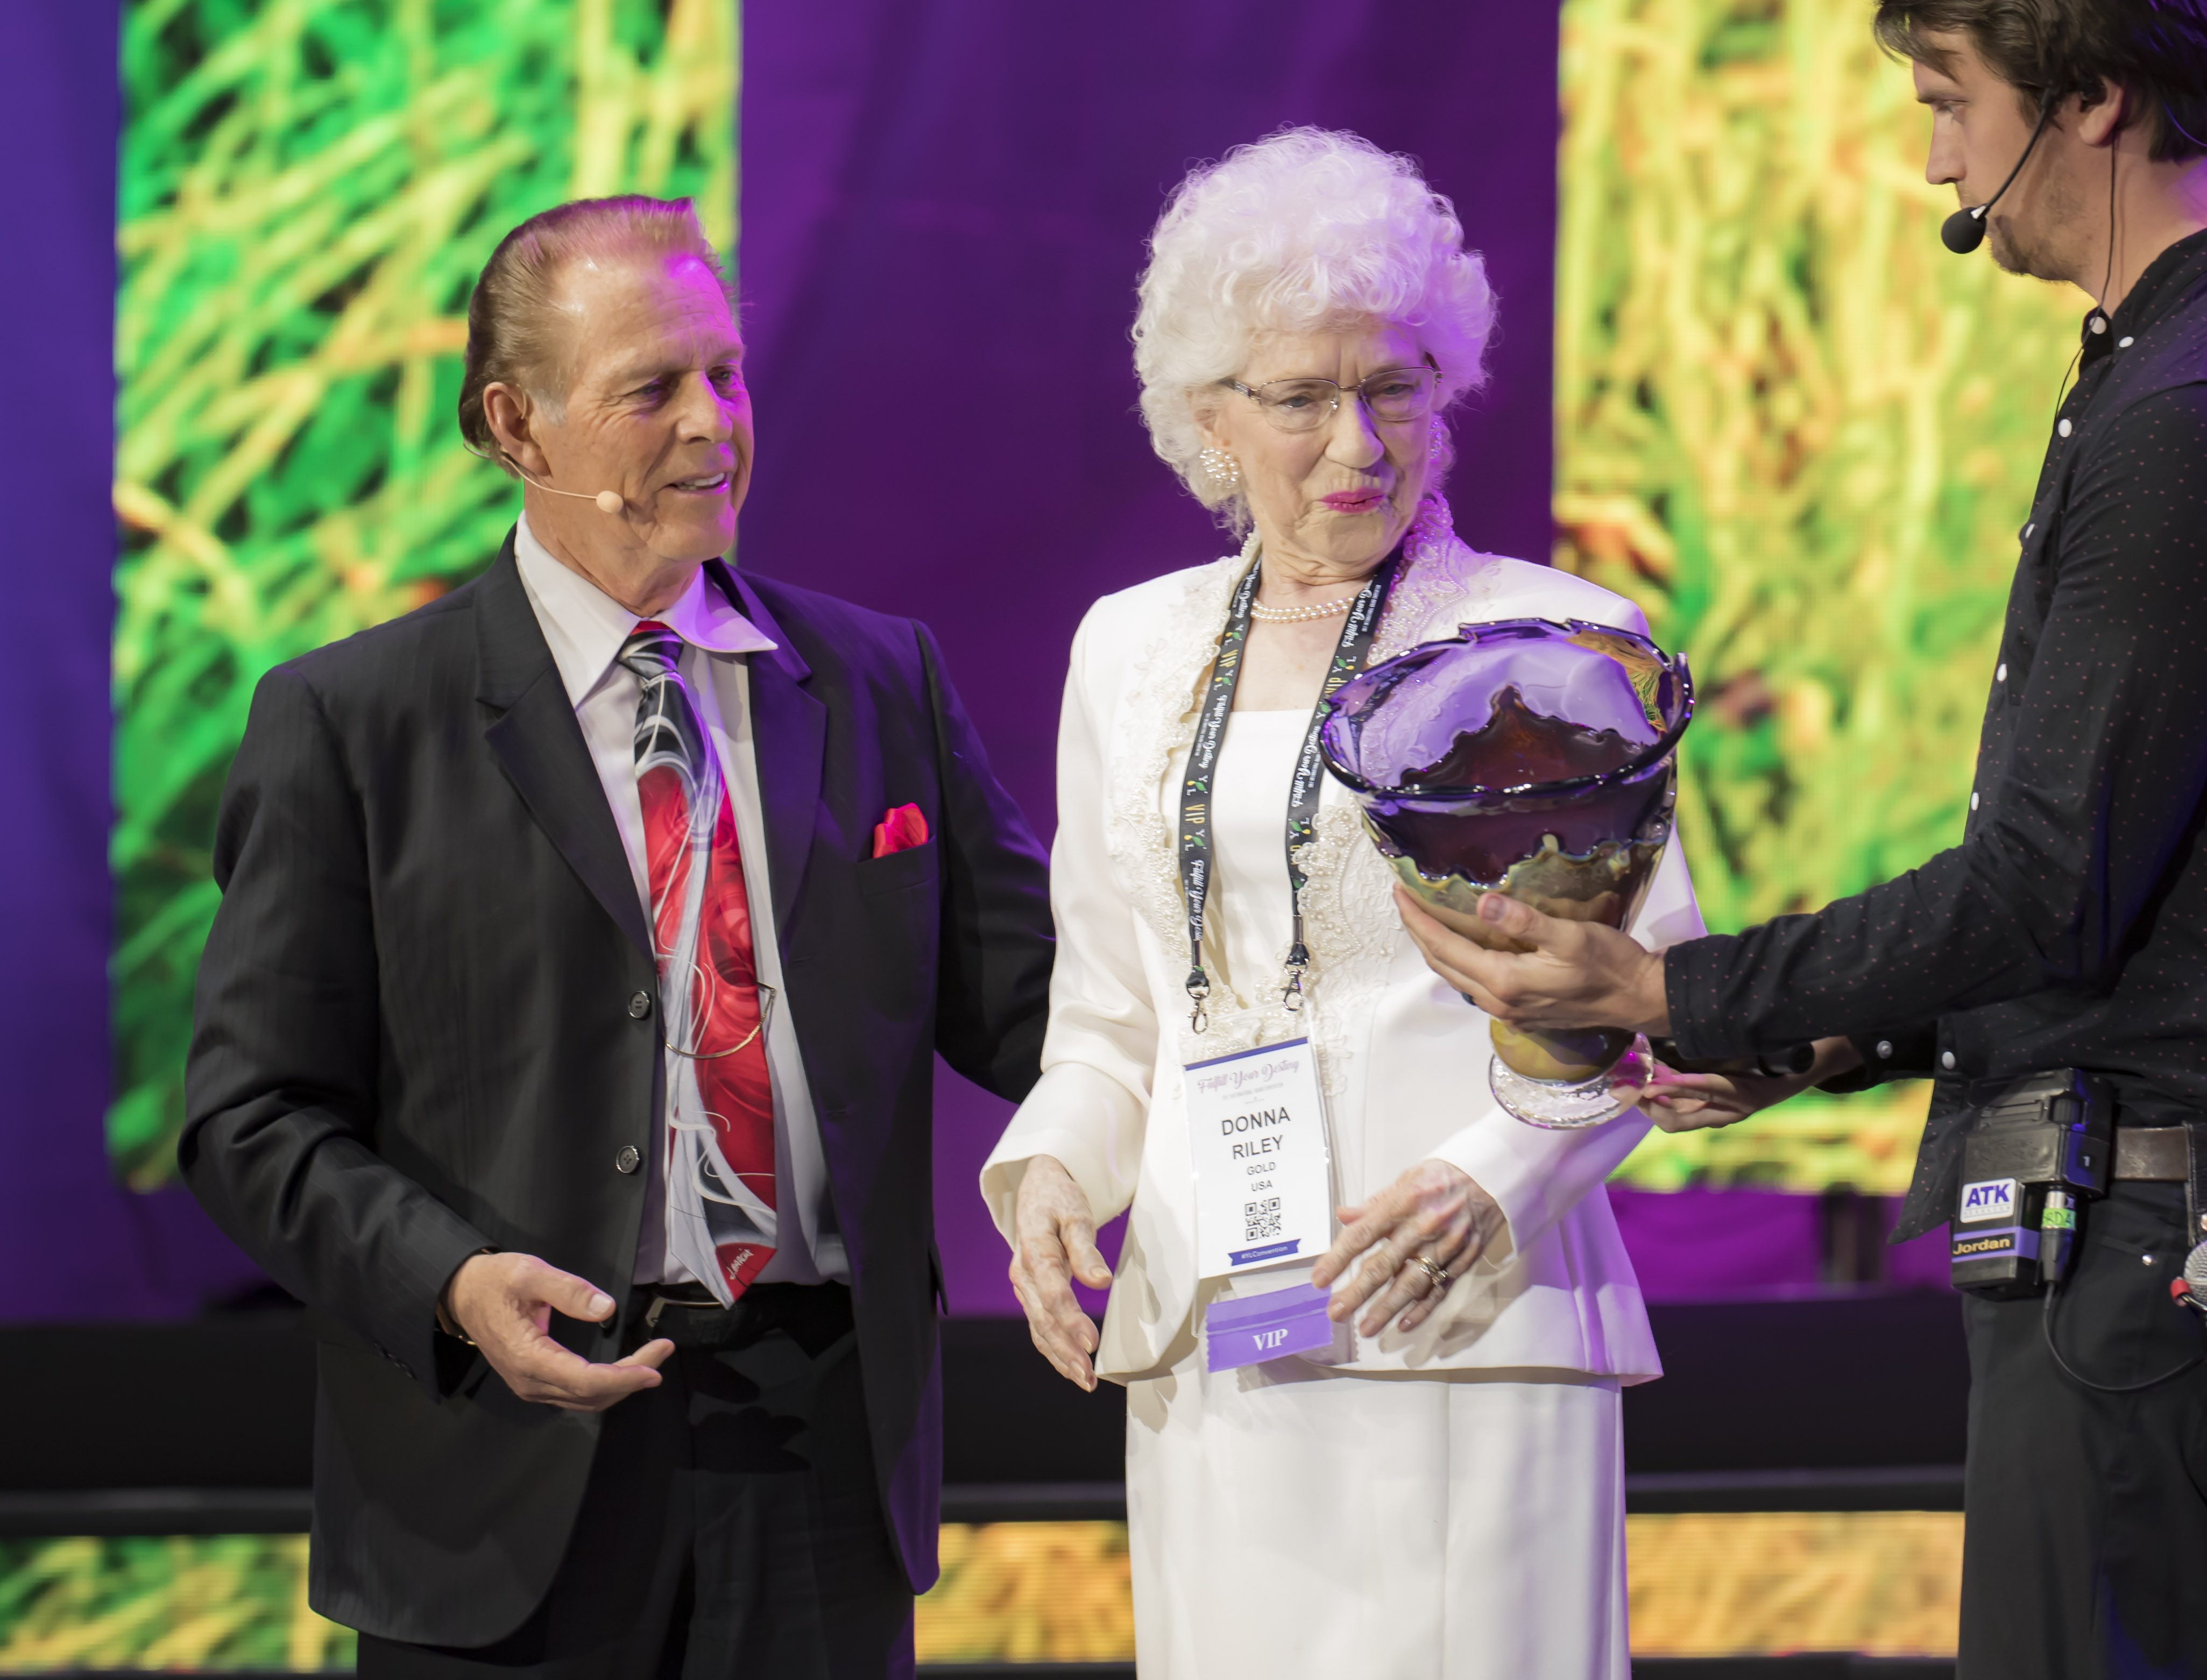 Donna Riley presented with the Spirit of Young Living award.